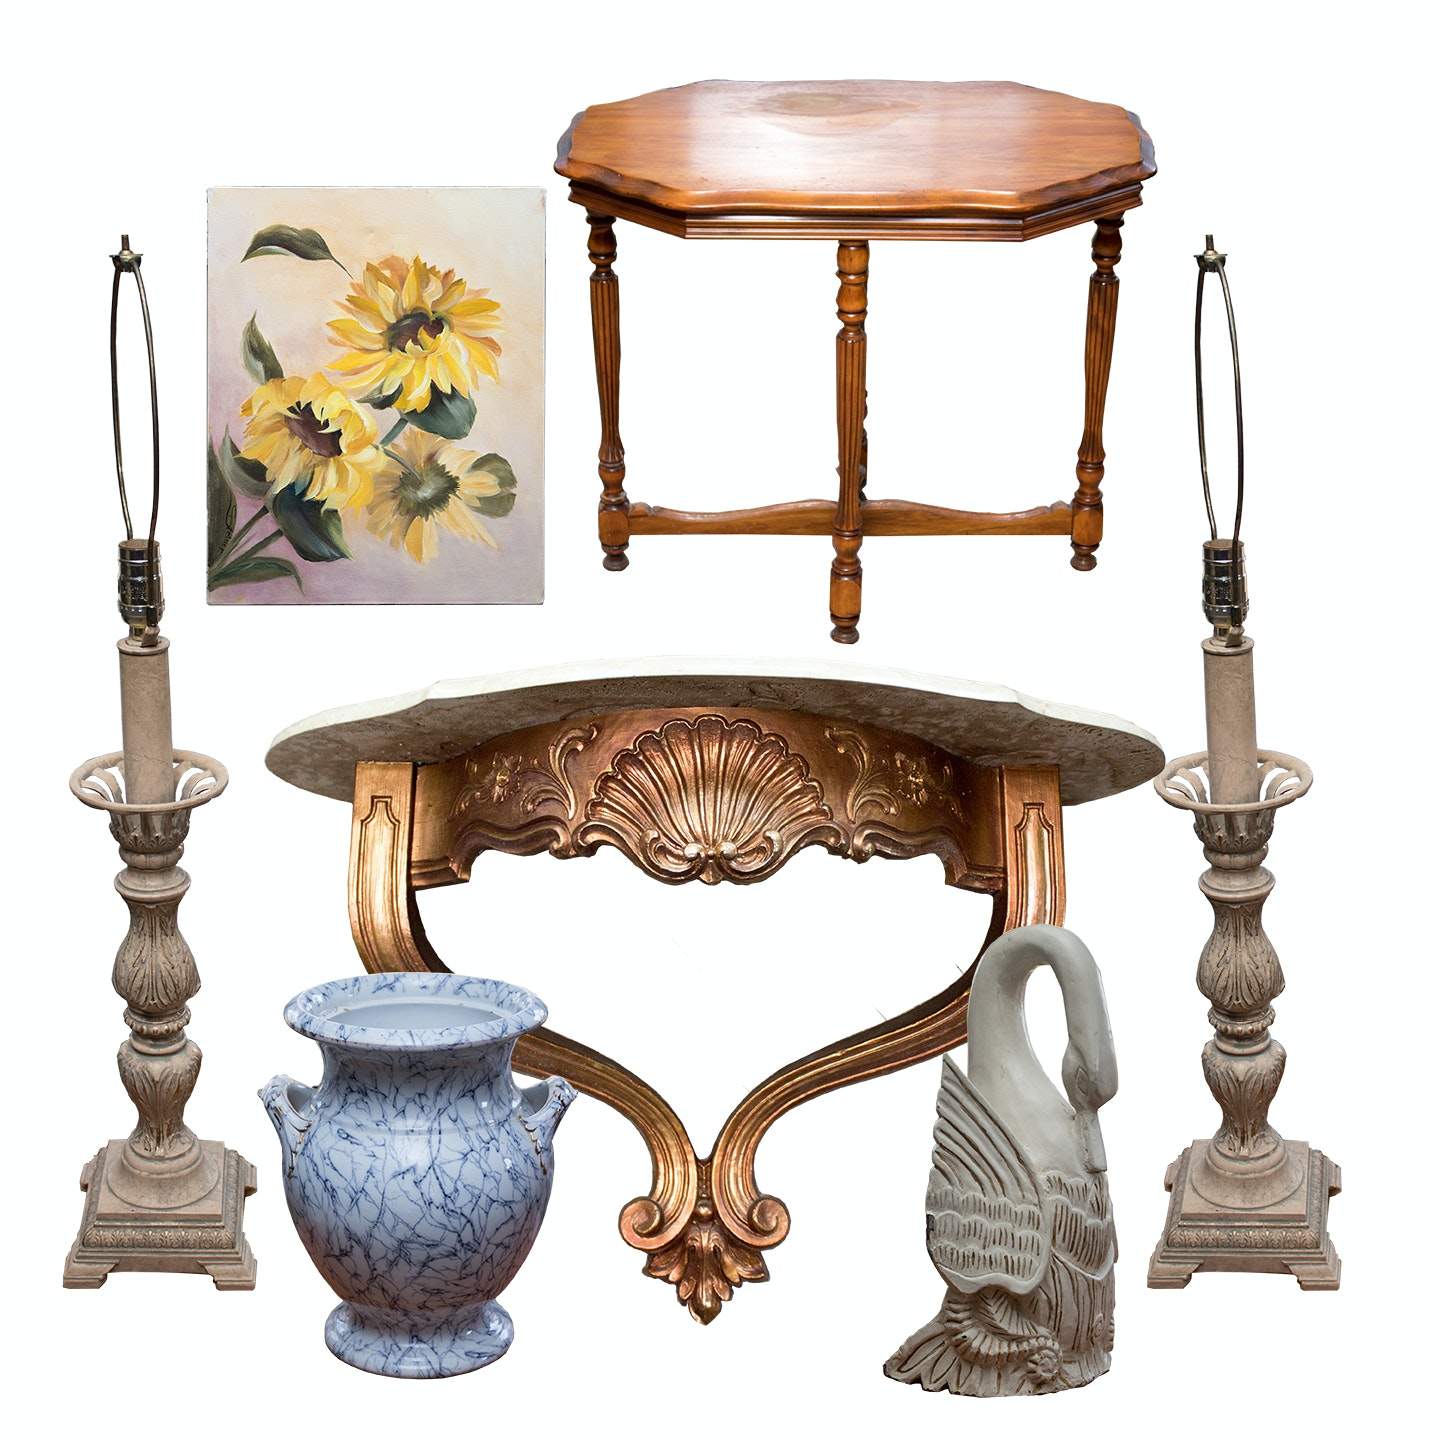 Vintage Table, Marble Wall Shelf and a Collection of Home Decor